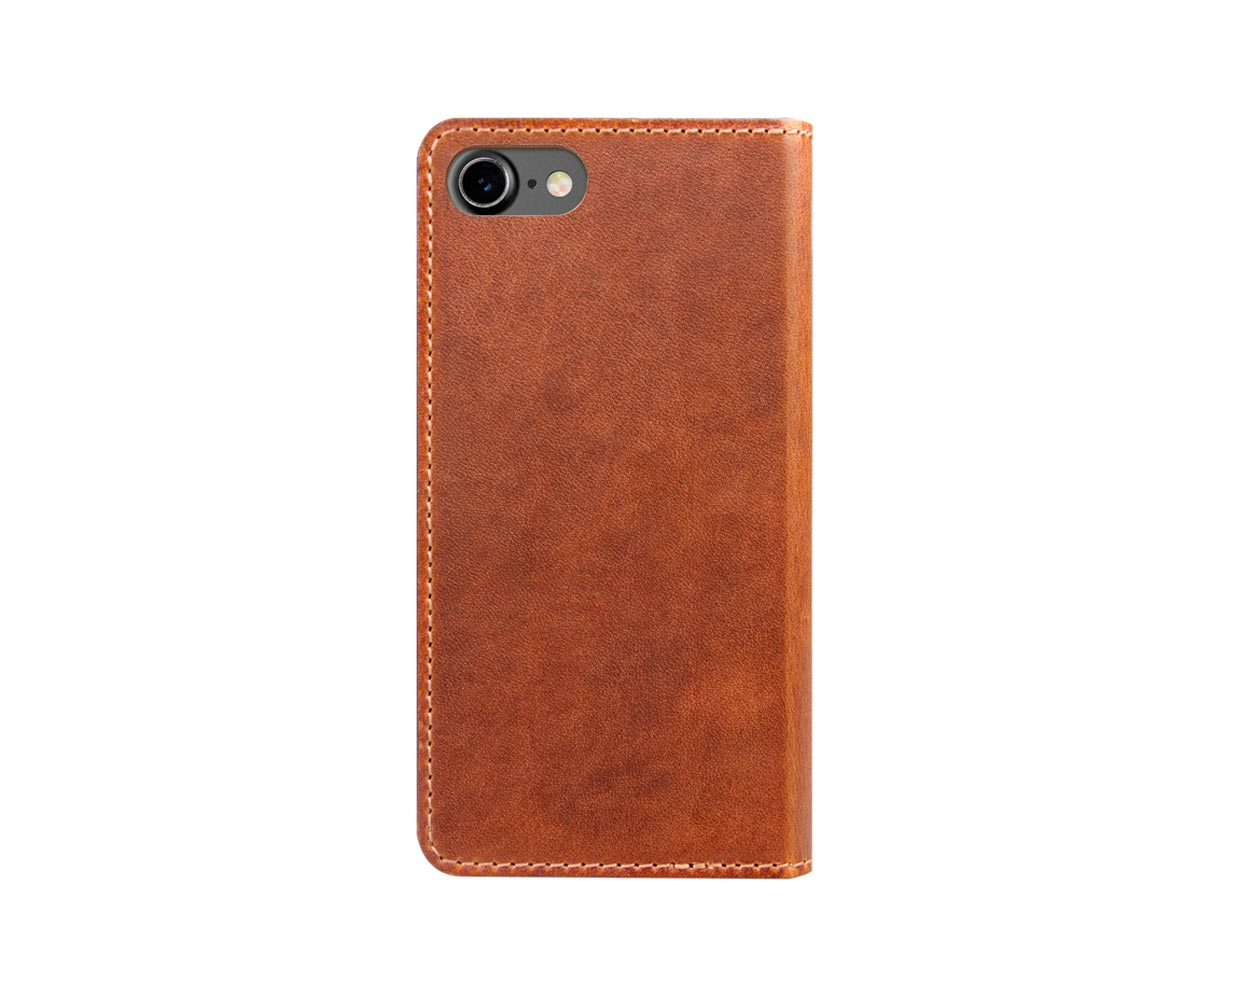 Чехлы: Nomad iPhone 7 Leather Folio Wallet Brown, фотография №1